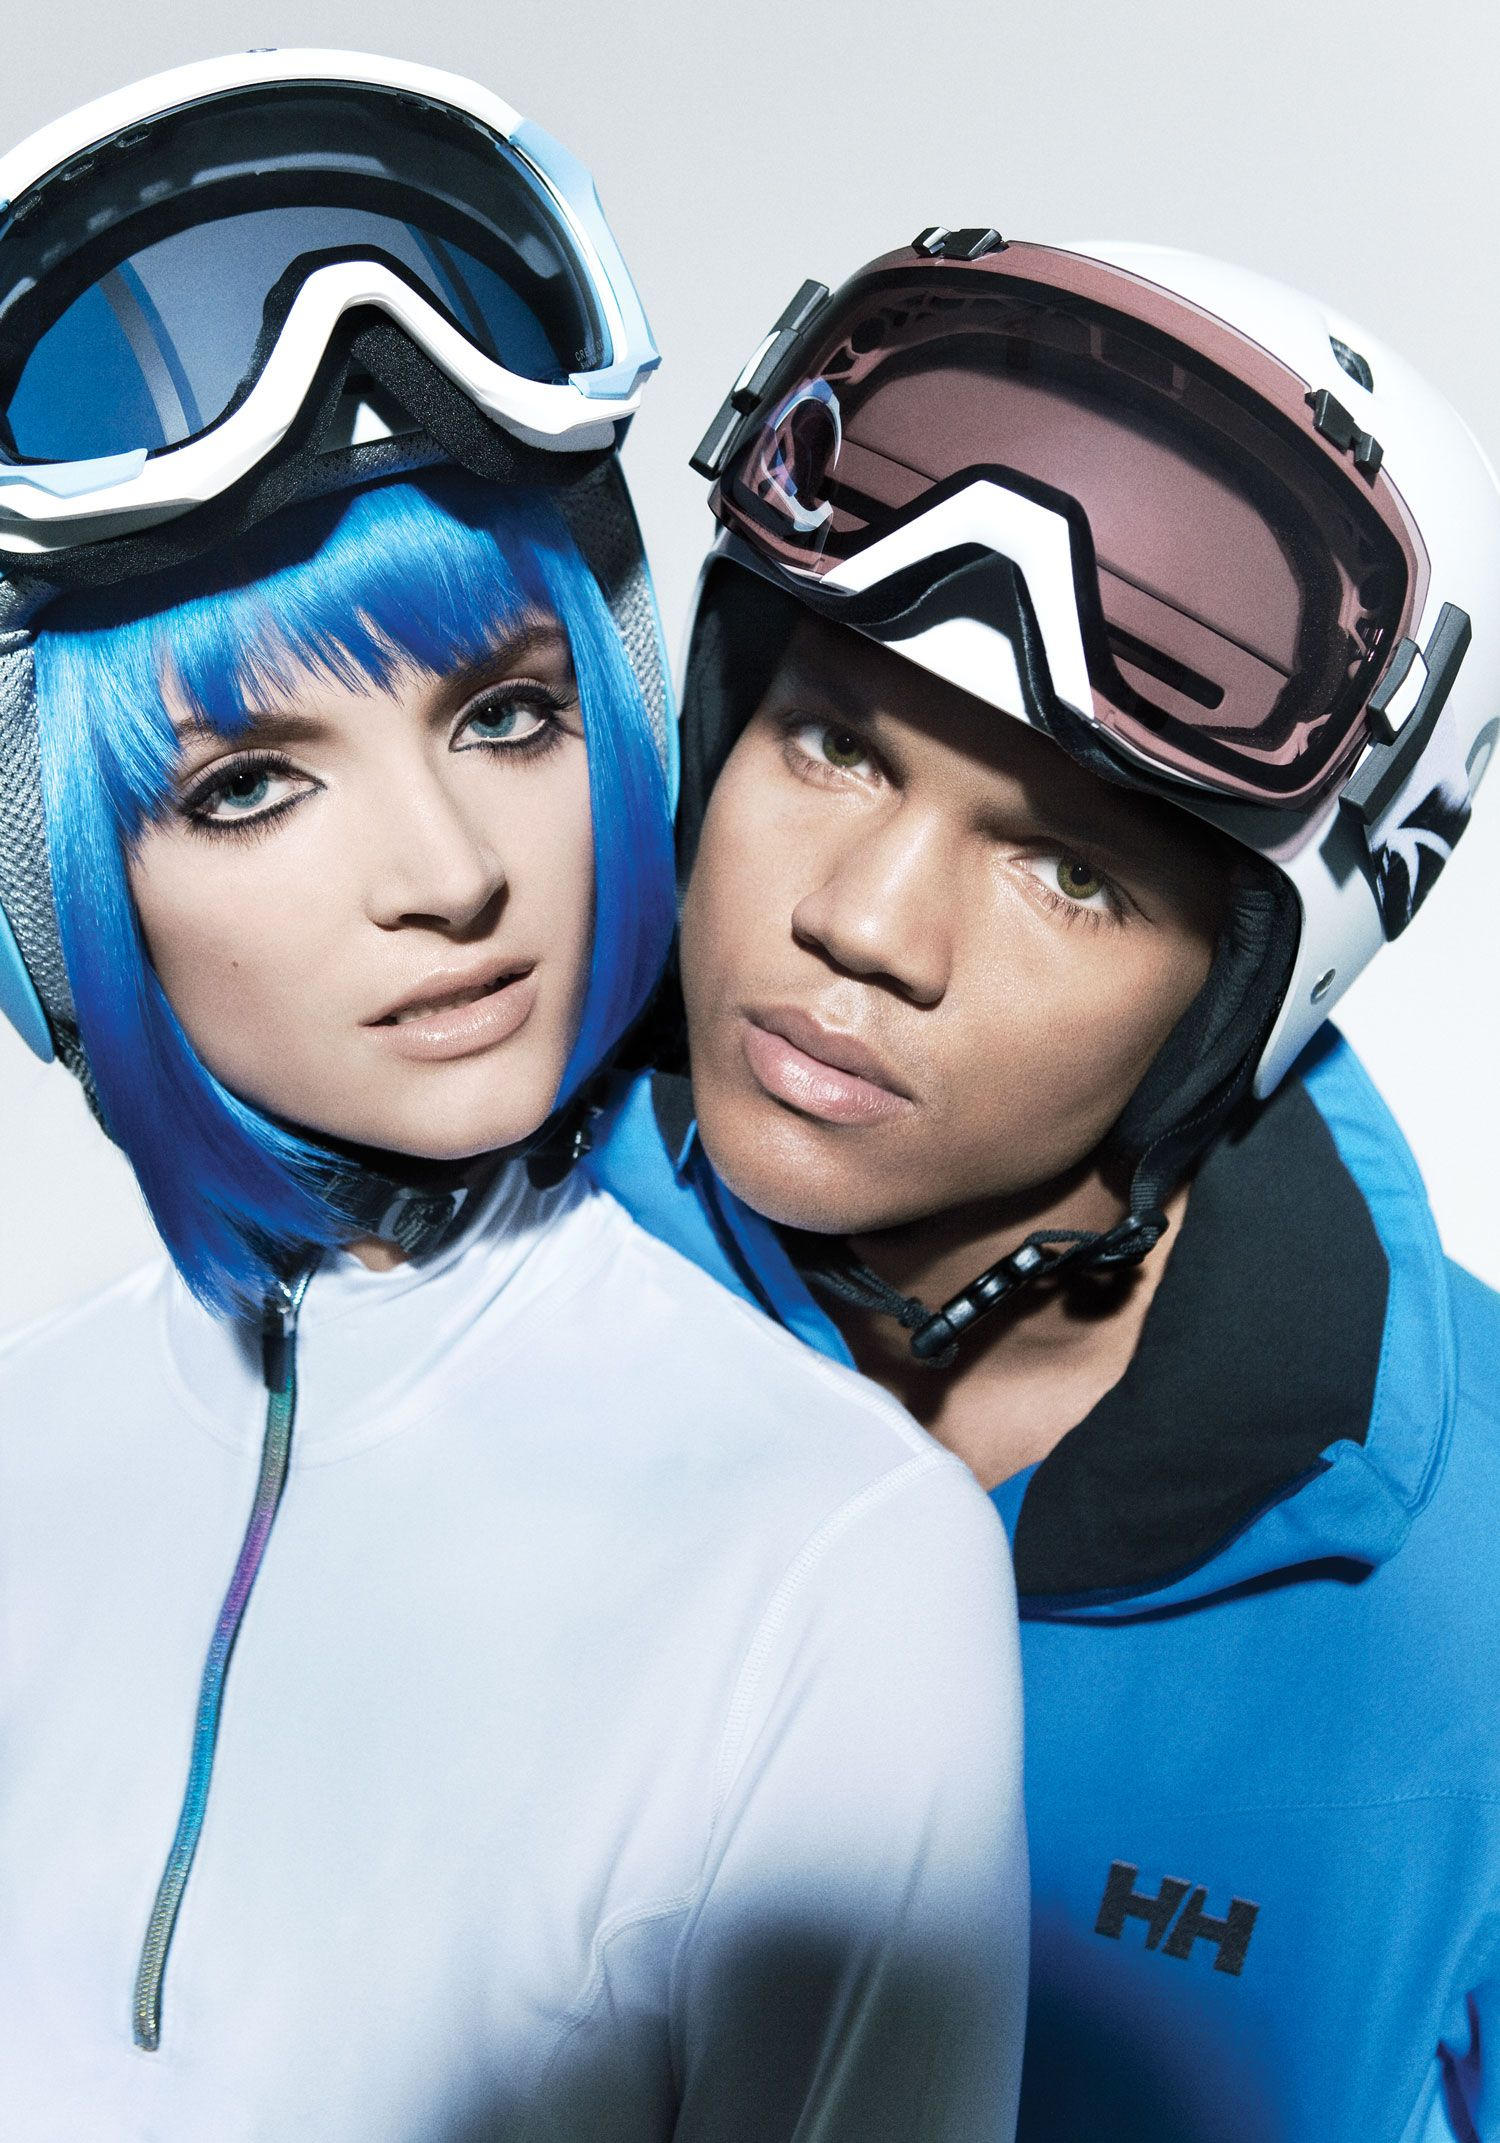 2012 Winter SNOW Fashion Shoot: Space Race. Photos By Jeff